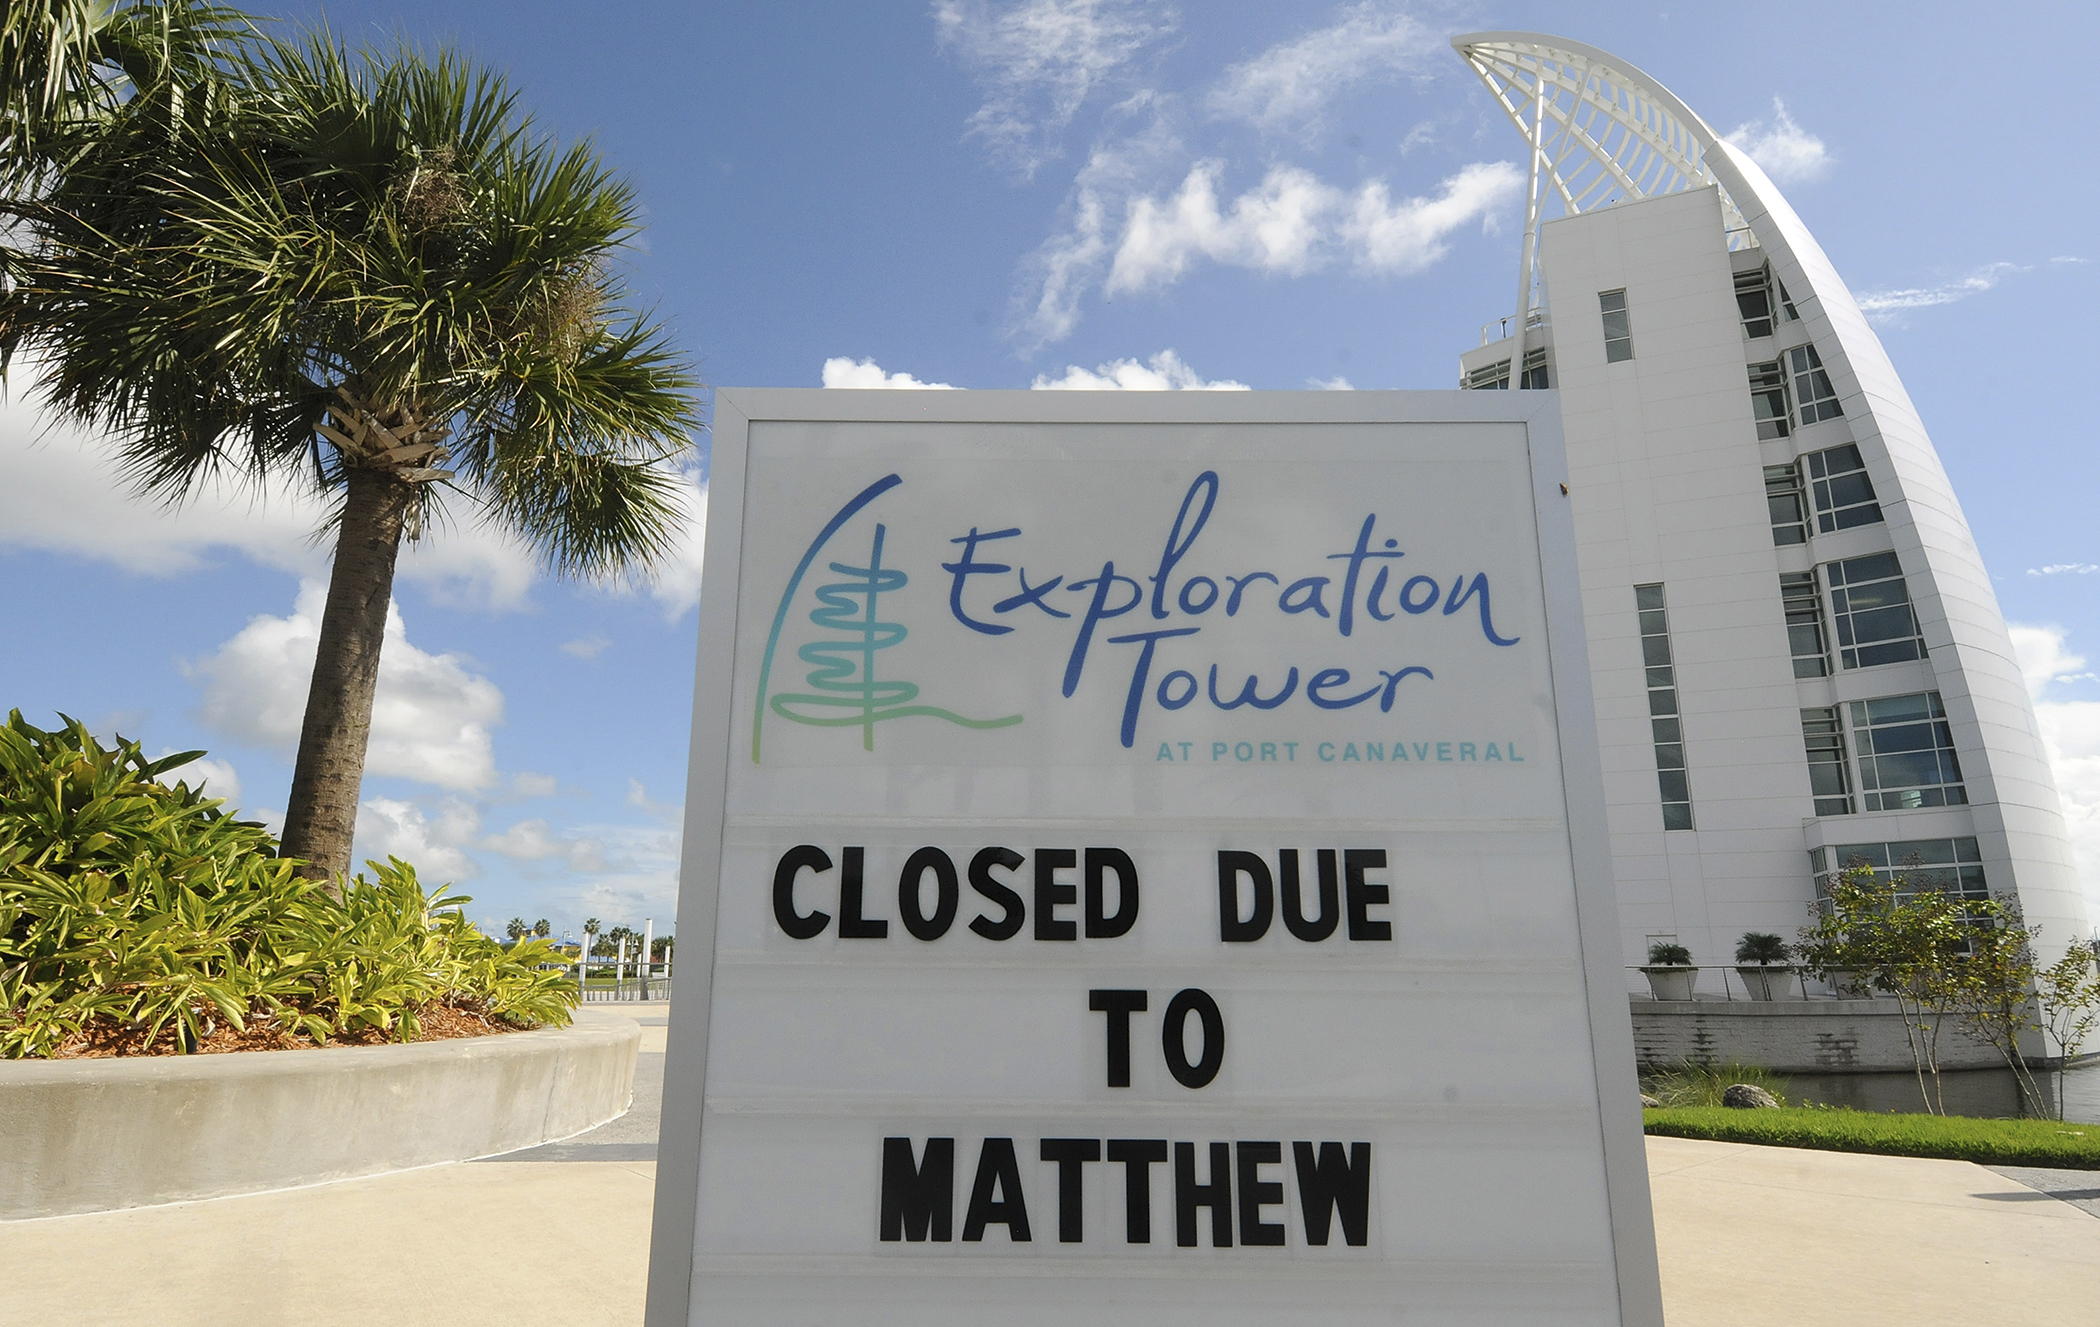 A closed sign is seen at the Exploration Tower in Port Canaveral, Florida on October 5, 2016 as Hurricane Matthew heads north toward the east coast of Florida, possibly as a category 4 hurricane.